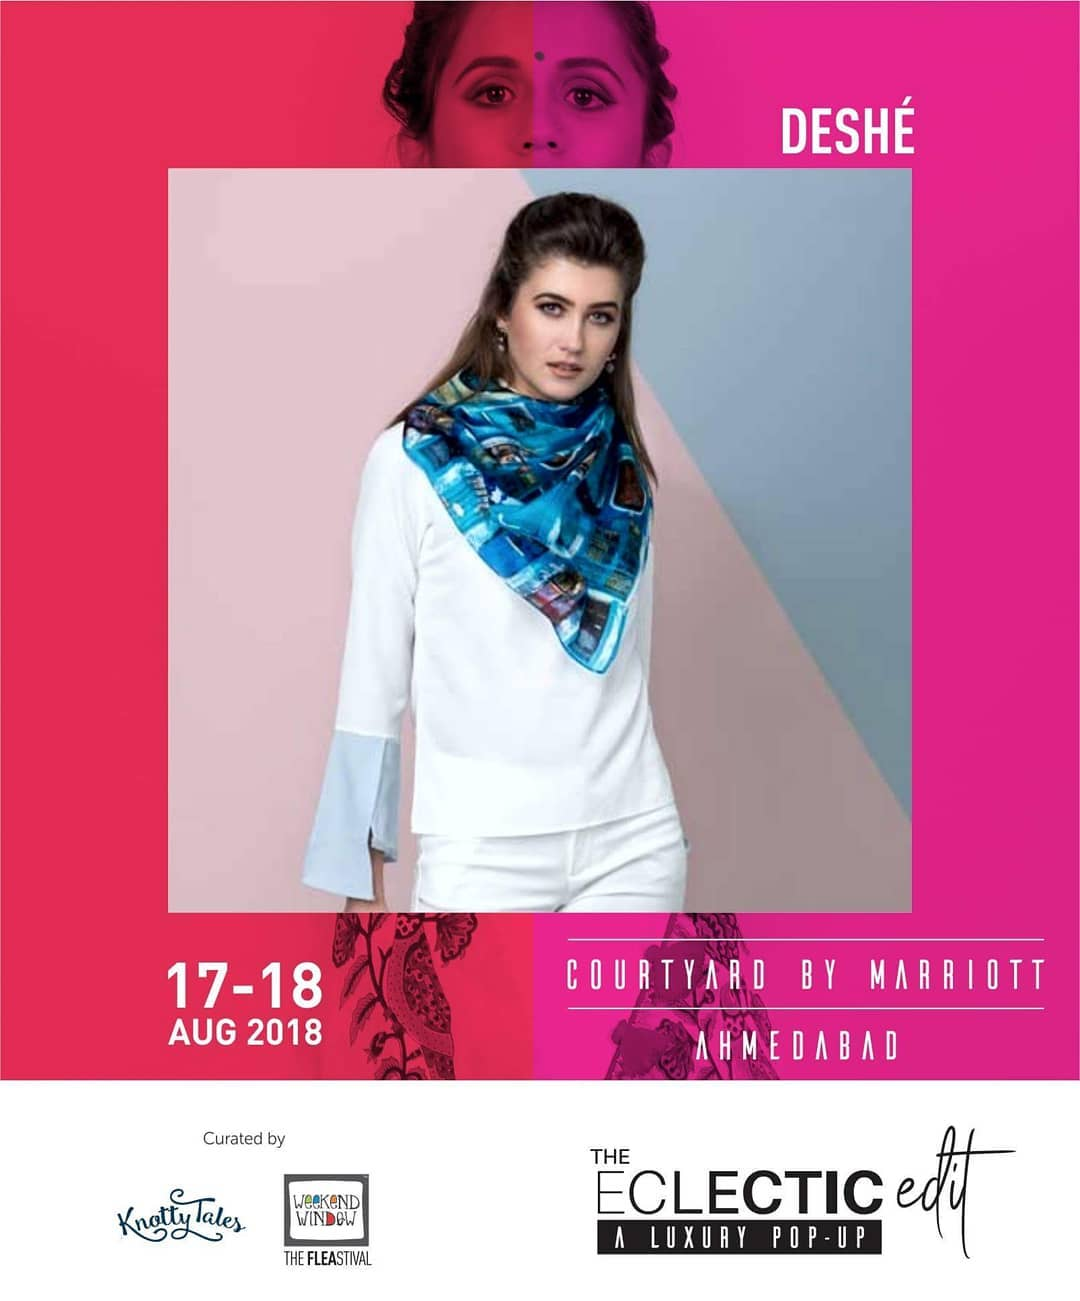 @thedeshestore scarves are inspired by European architectural, natural sceneries and abstract art. Each and every design has been hand painted by our Australian designer and then converted into digital prints.  @thedeshestore has a wide range scarves of different materials like - pure silk, cotton silk fusion, cotton modal, fine wool, silk wool and more! Each scarf design has a story, to explore more visitors  #indiafashionstore #ahmedabadstyle #indianboutique #scarvesfashion #scarves #designerscarves #pinkscarves #followforfollow #followme #boutiquefashion #followfashion #followboutique #ahmedabadfashion #ahmedabadfashionblogger #ahmedabadboutique #IndiaBoutique #indianfashion #instalike #boutiquelove #ahmedabaddiaries #deshestore #boutique #ahmedabad_instagram #ahmedabadblogger #ootdinspiration